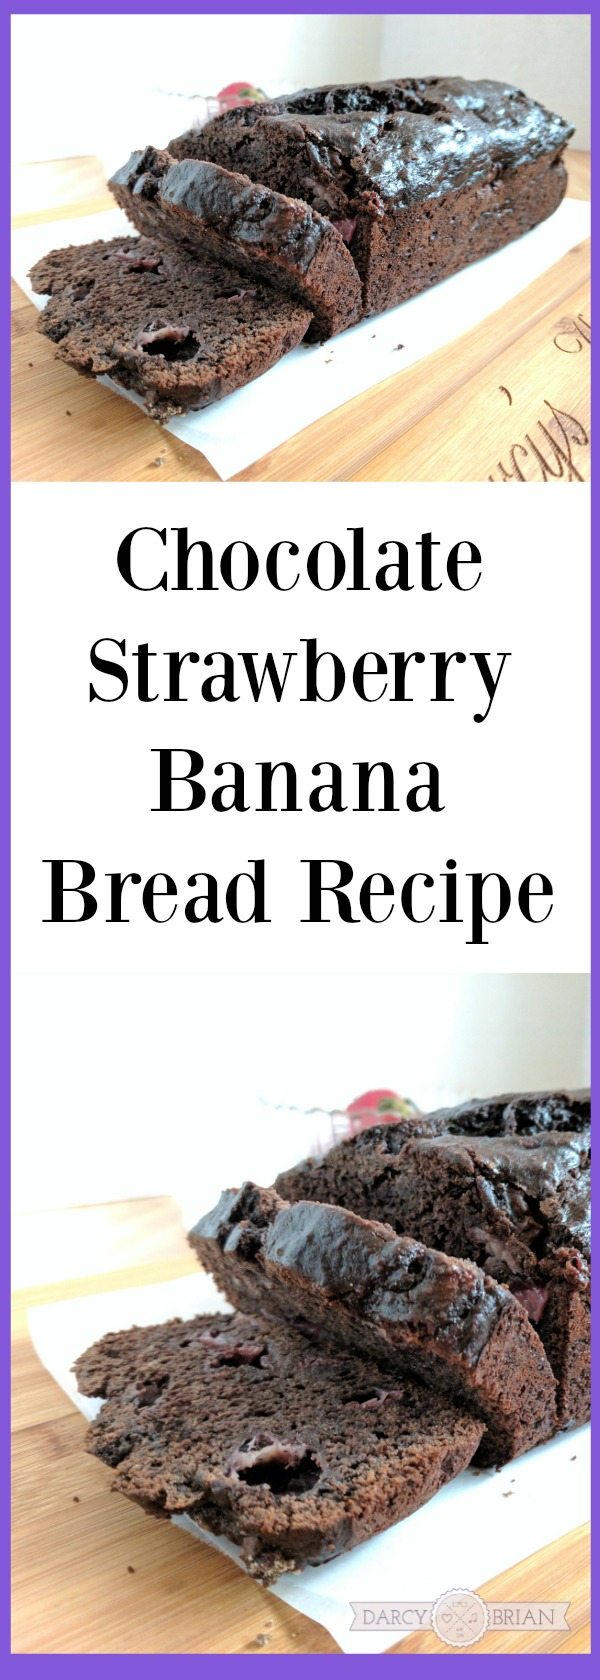 Looking for a deliciously easy breakfast treat? Try making this Chocolate Strawberry Banana Bread recipe while also learning about Heifer's School Milk Feeding Program (AD).